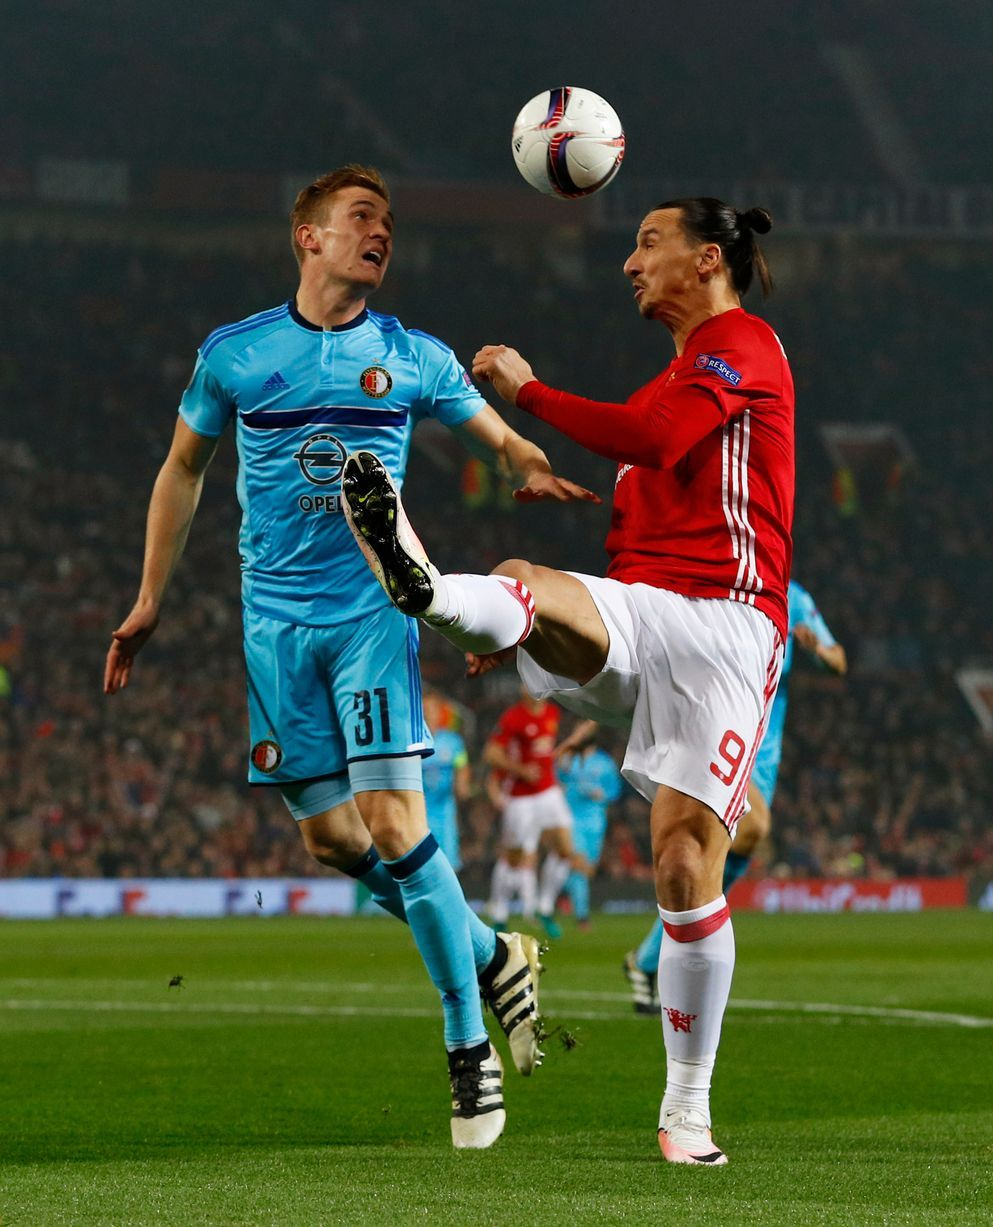 7611ecf62 Manchester United s Zlatan Ibrahimovic in action with Feyenoord s Wessel  Dammers